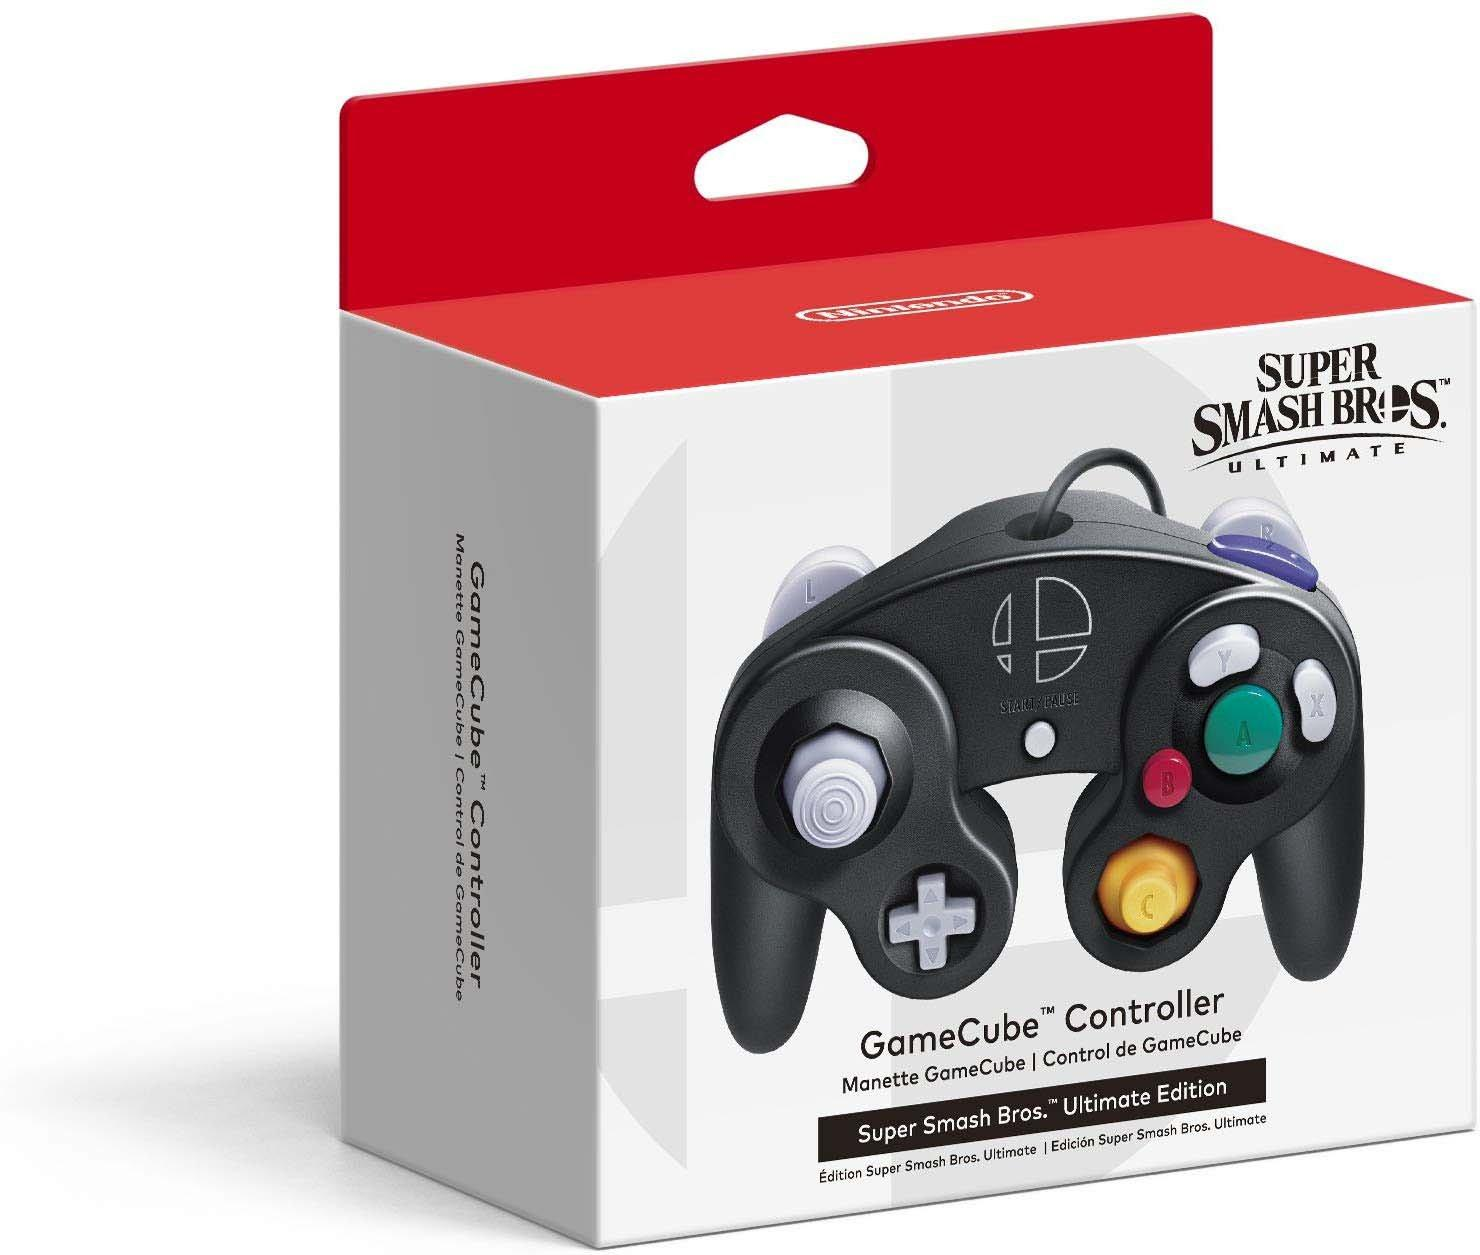 Super Smash Bros Ultimate Edition Gamecube Controller